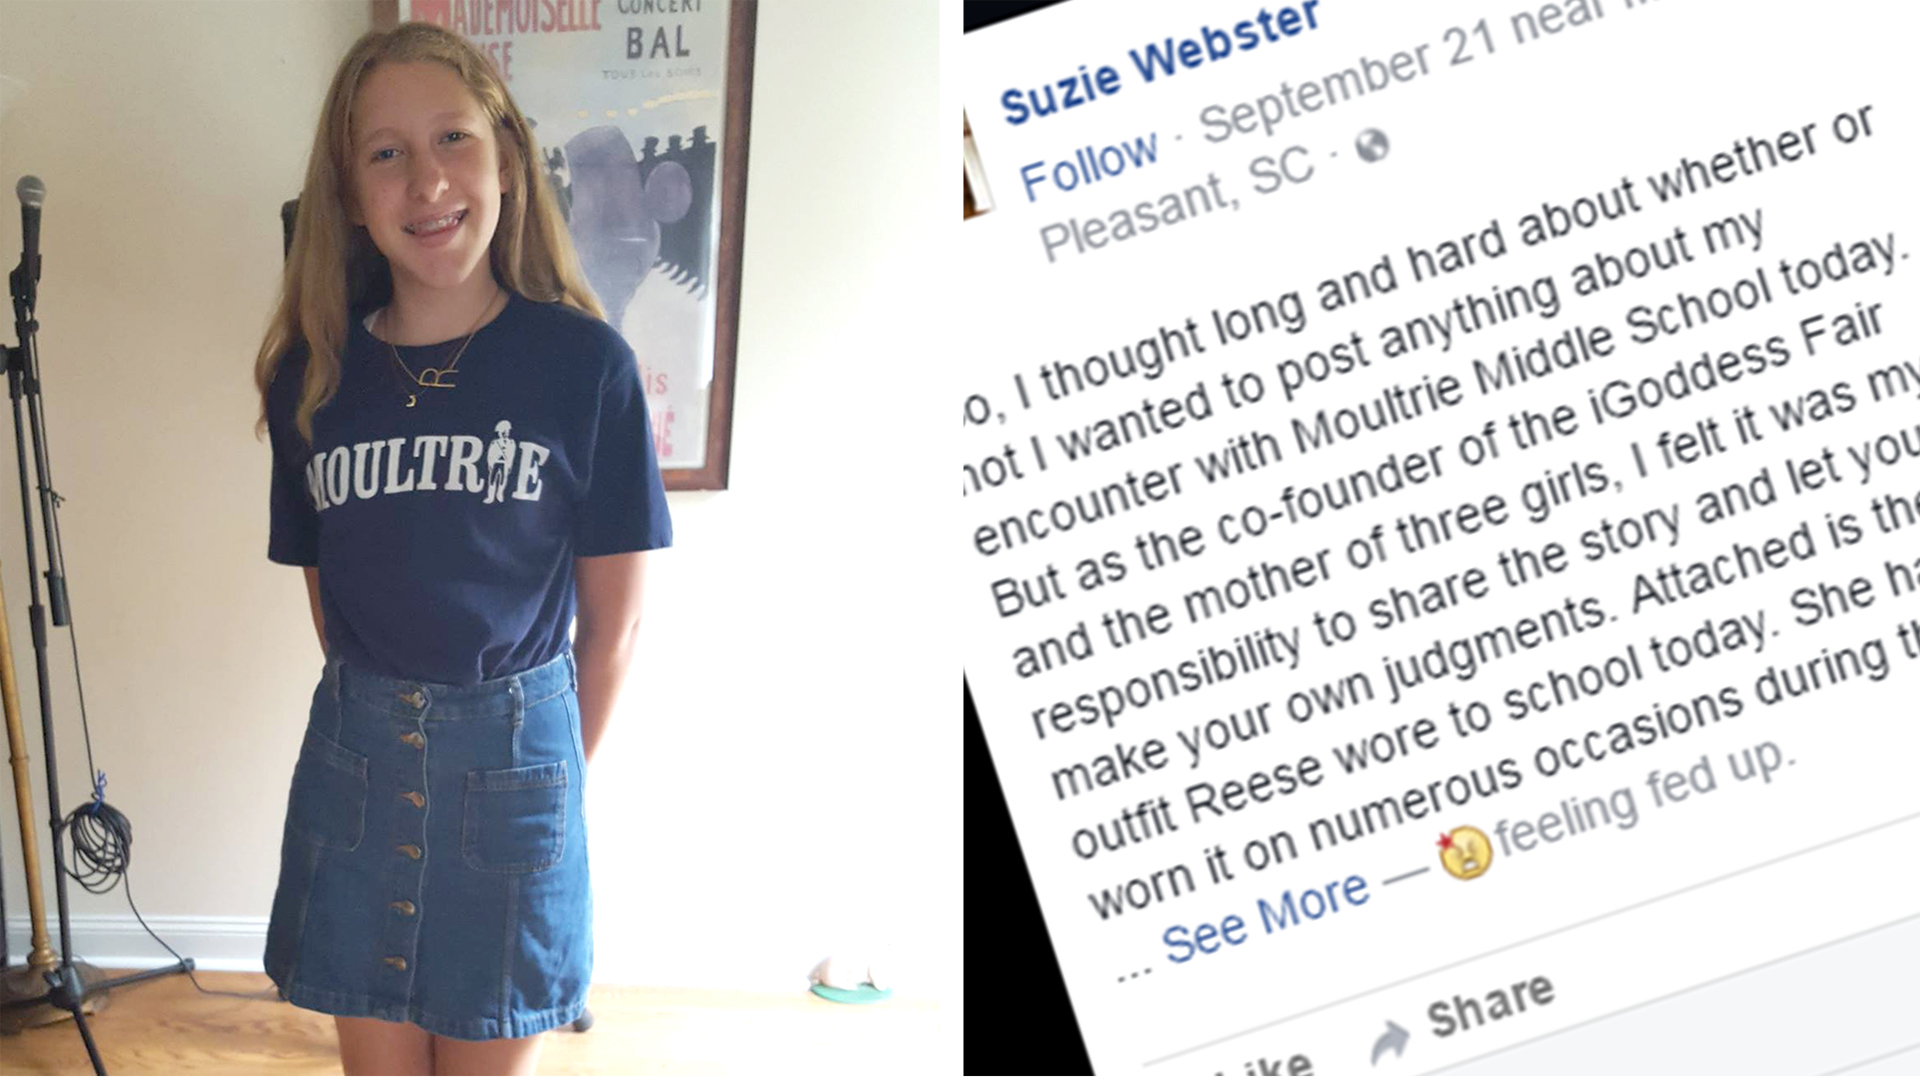 The dress controversy - 6th Grader Humiliated After Teacher Says Her Skirt Is For Clubbing Today Com